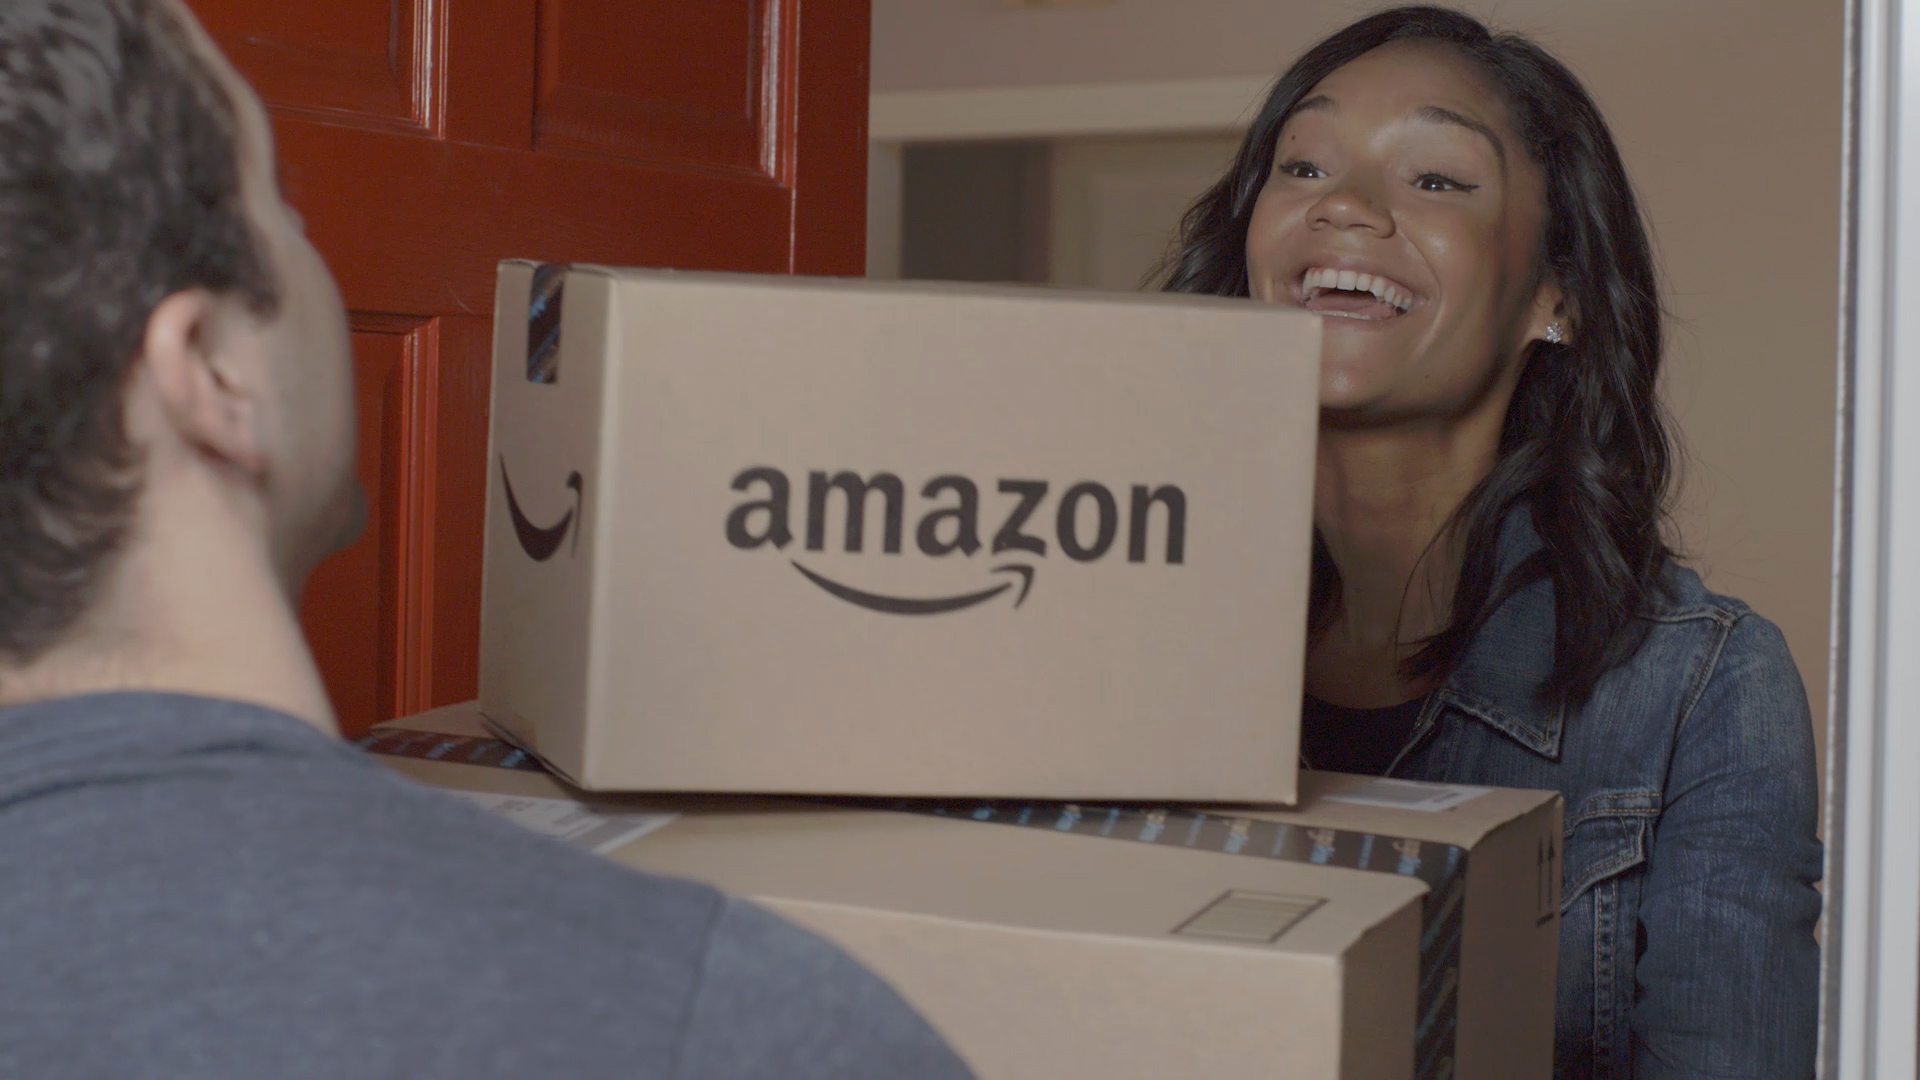 Amazon's own food brand may be coming soon